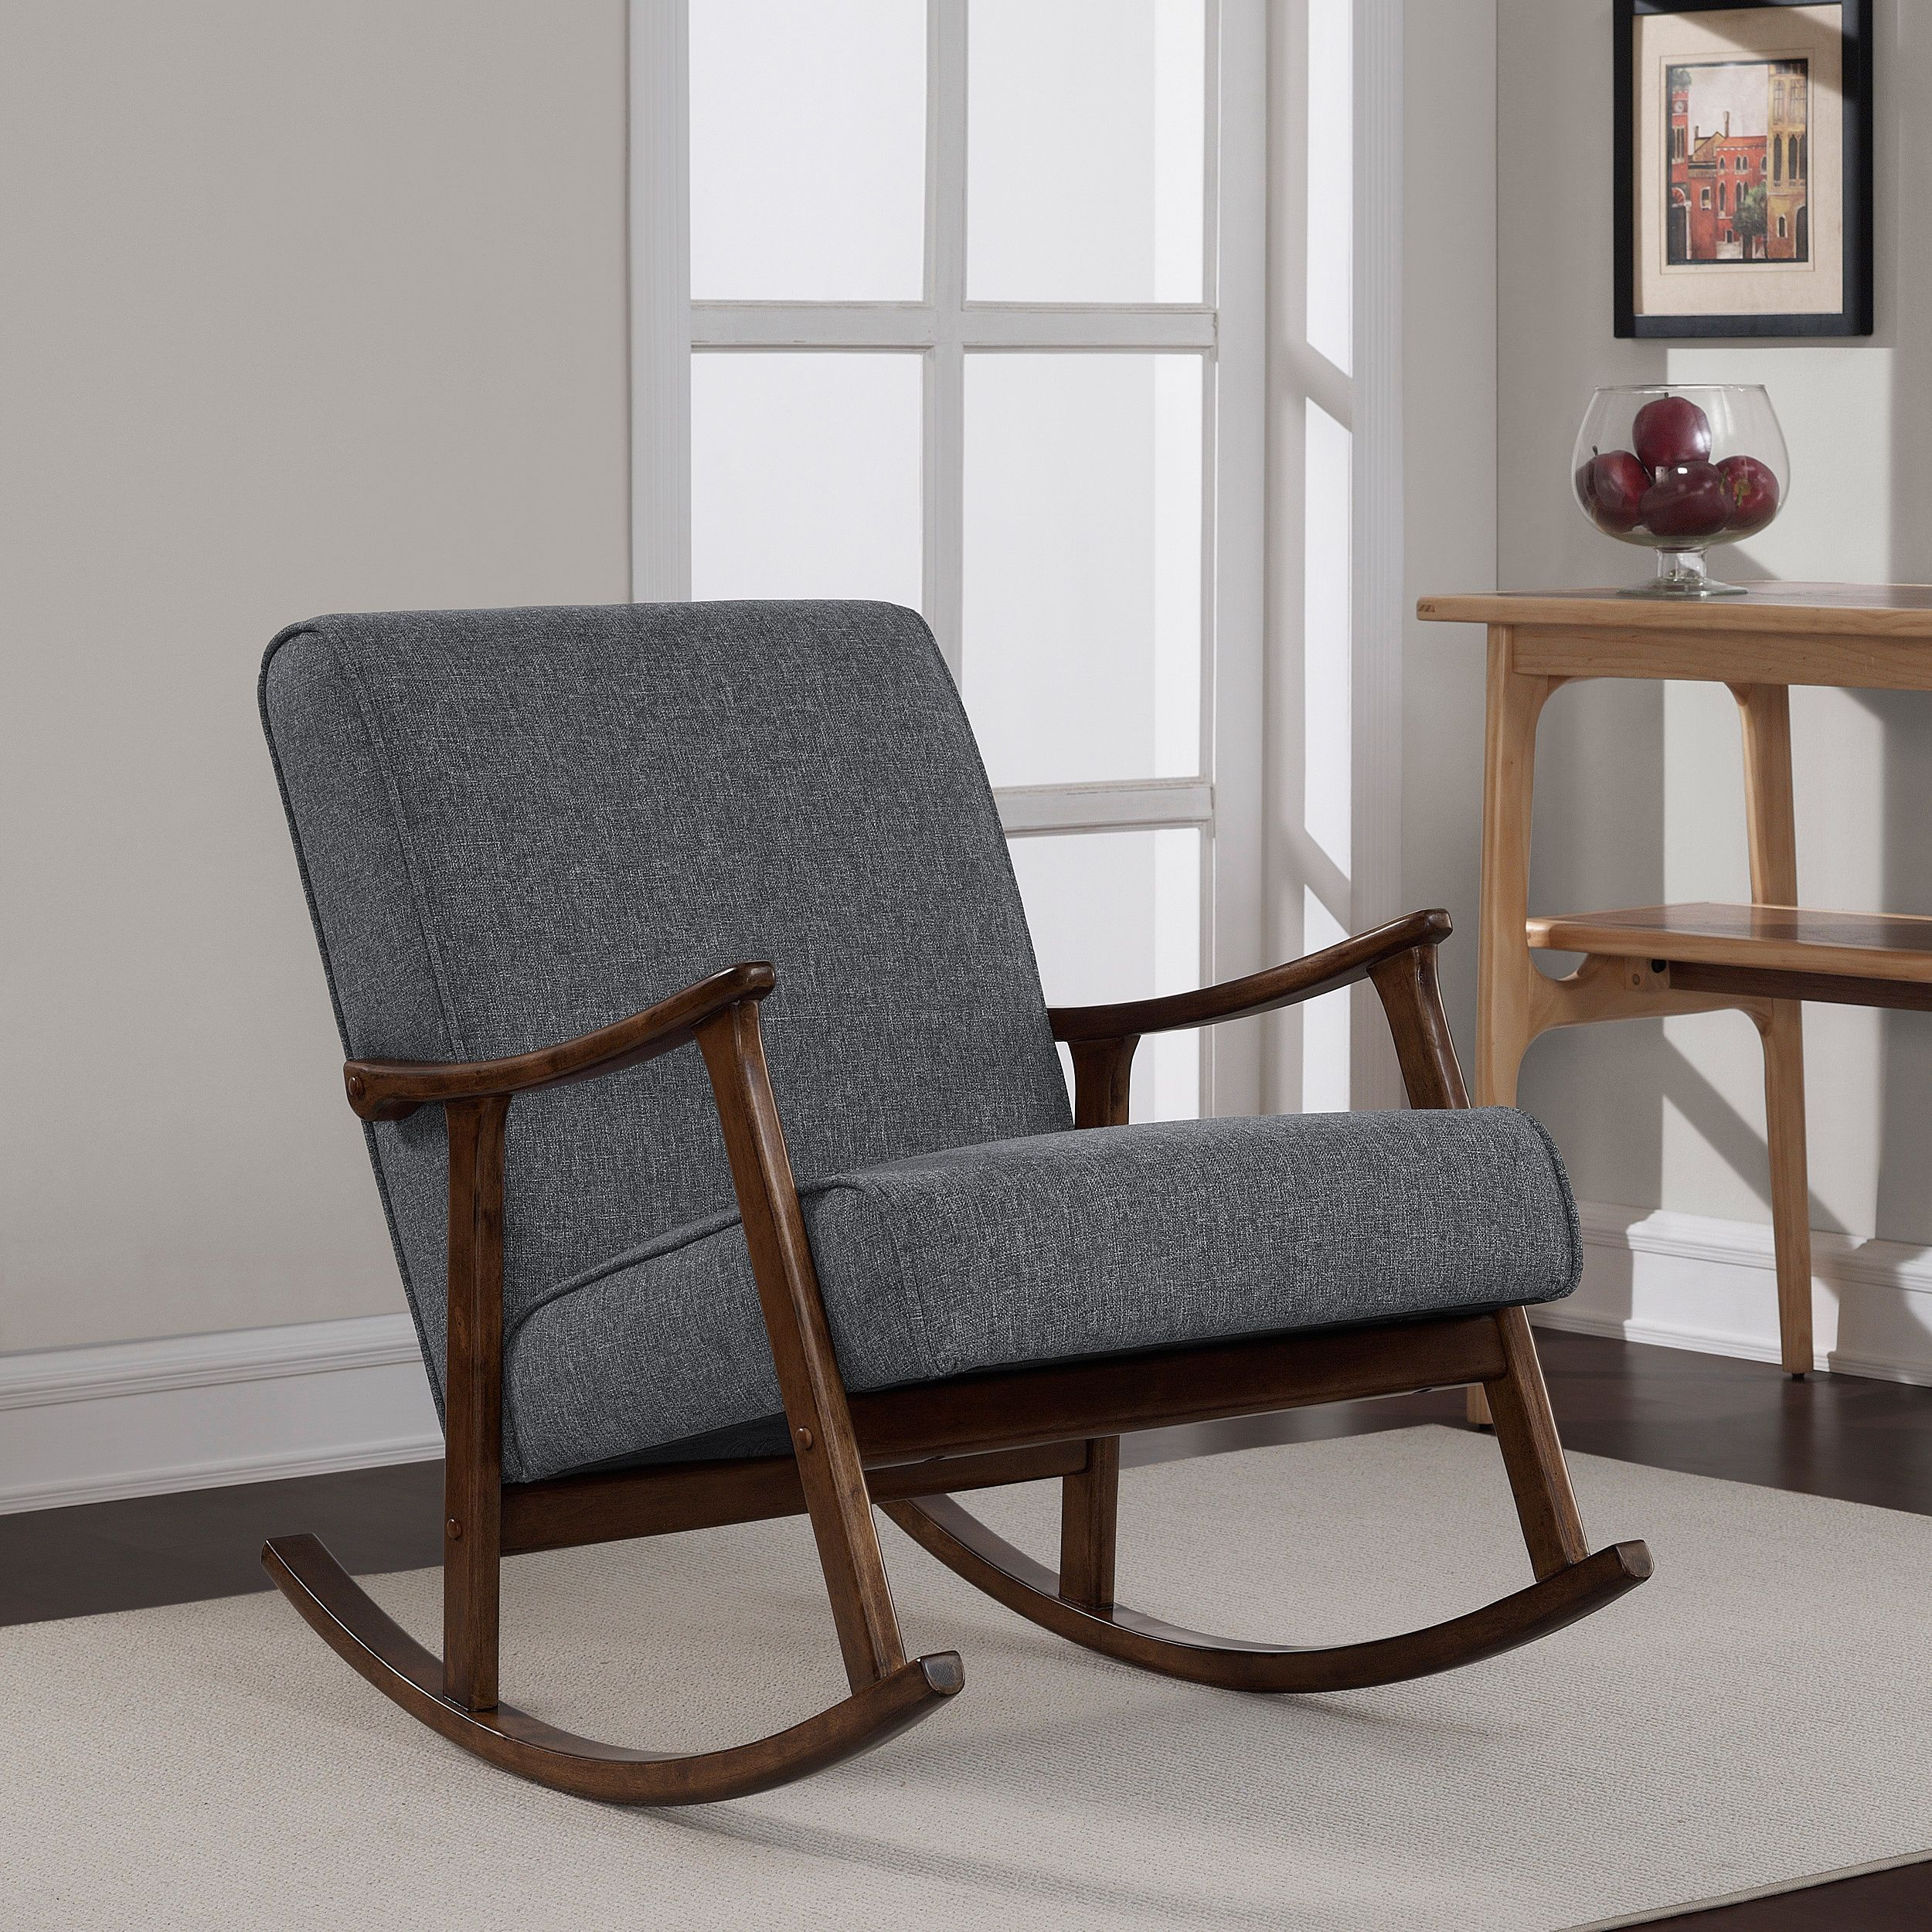 Give Any Room Some Retro Inspiration With This Fabric Upholstered Rocker Chair The Solid Wood Frame Offers Years Of Durable Use Finished In A Rich Walnut